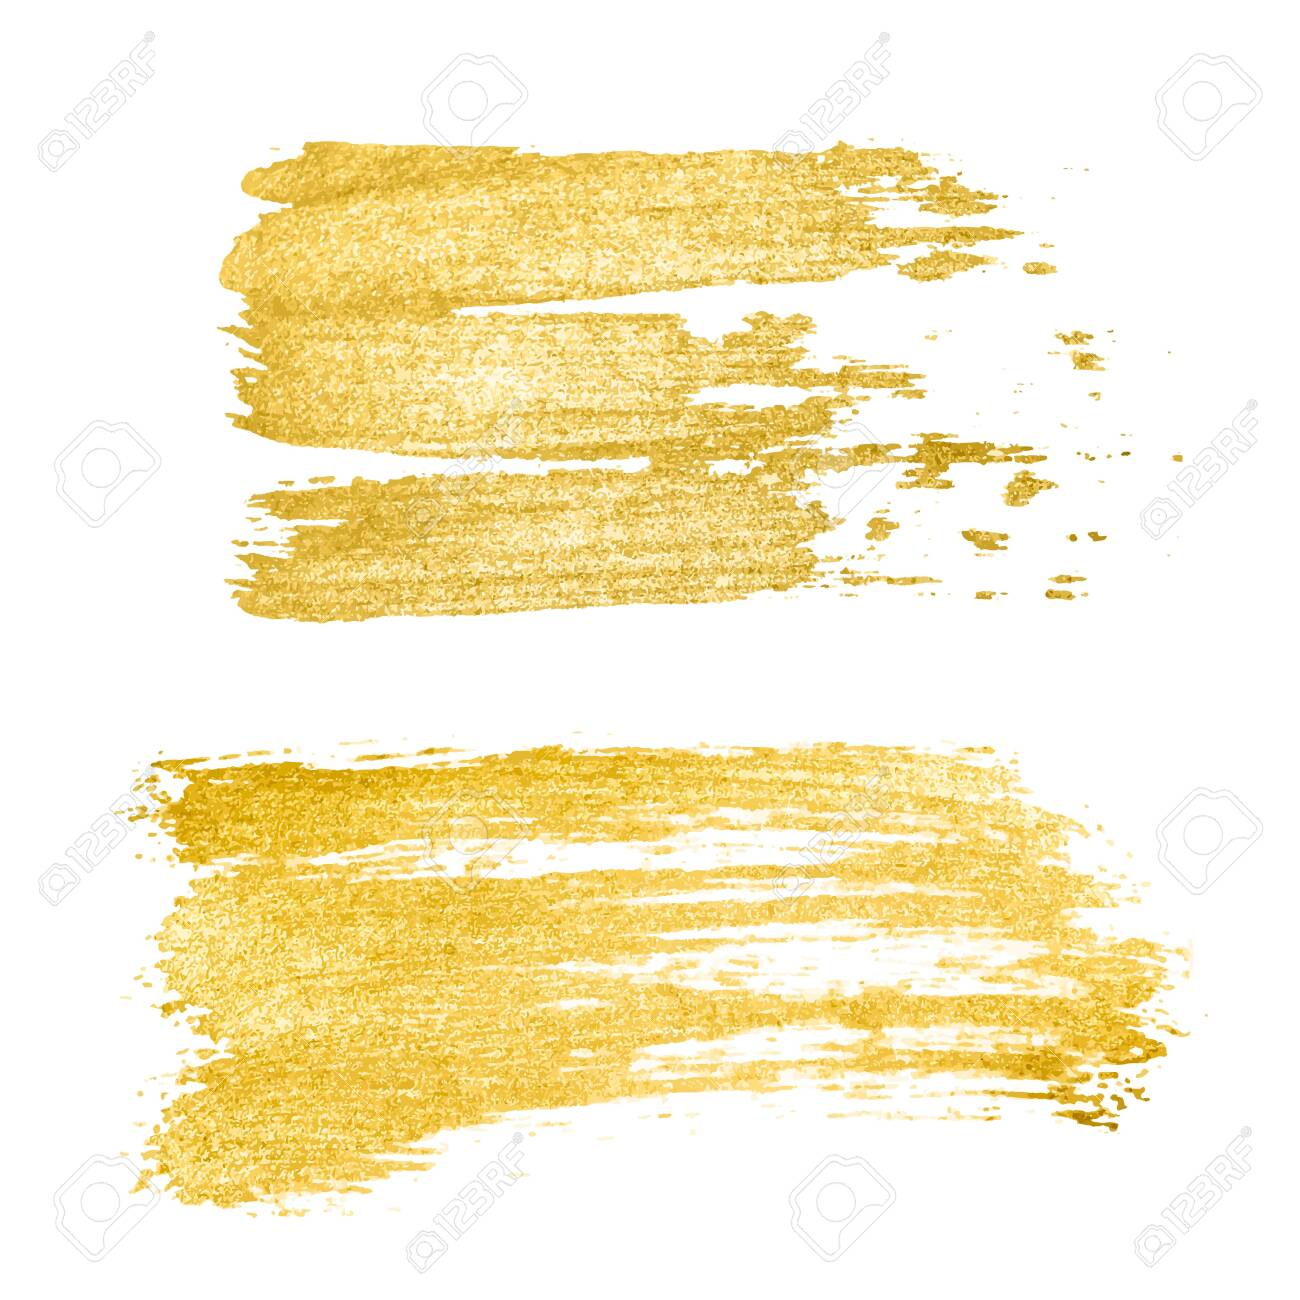 Vector golden brush stroke, brush, line or texture. Hand drawn brush stroke design element, box, frame or background for text. Gold Texture Paint Stain - 123189086